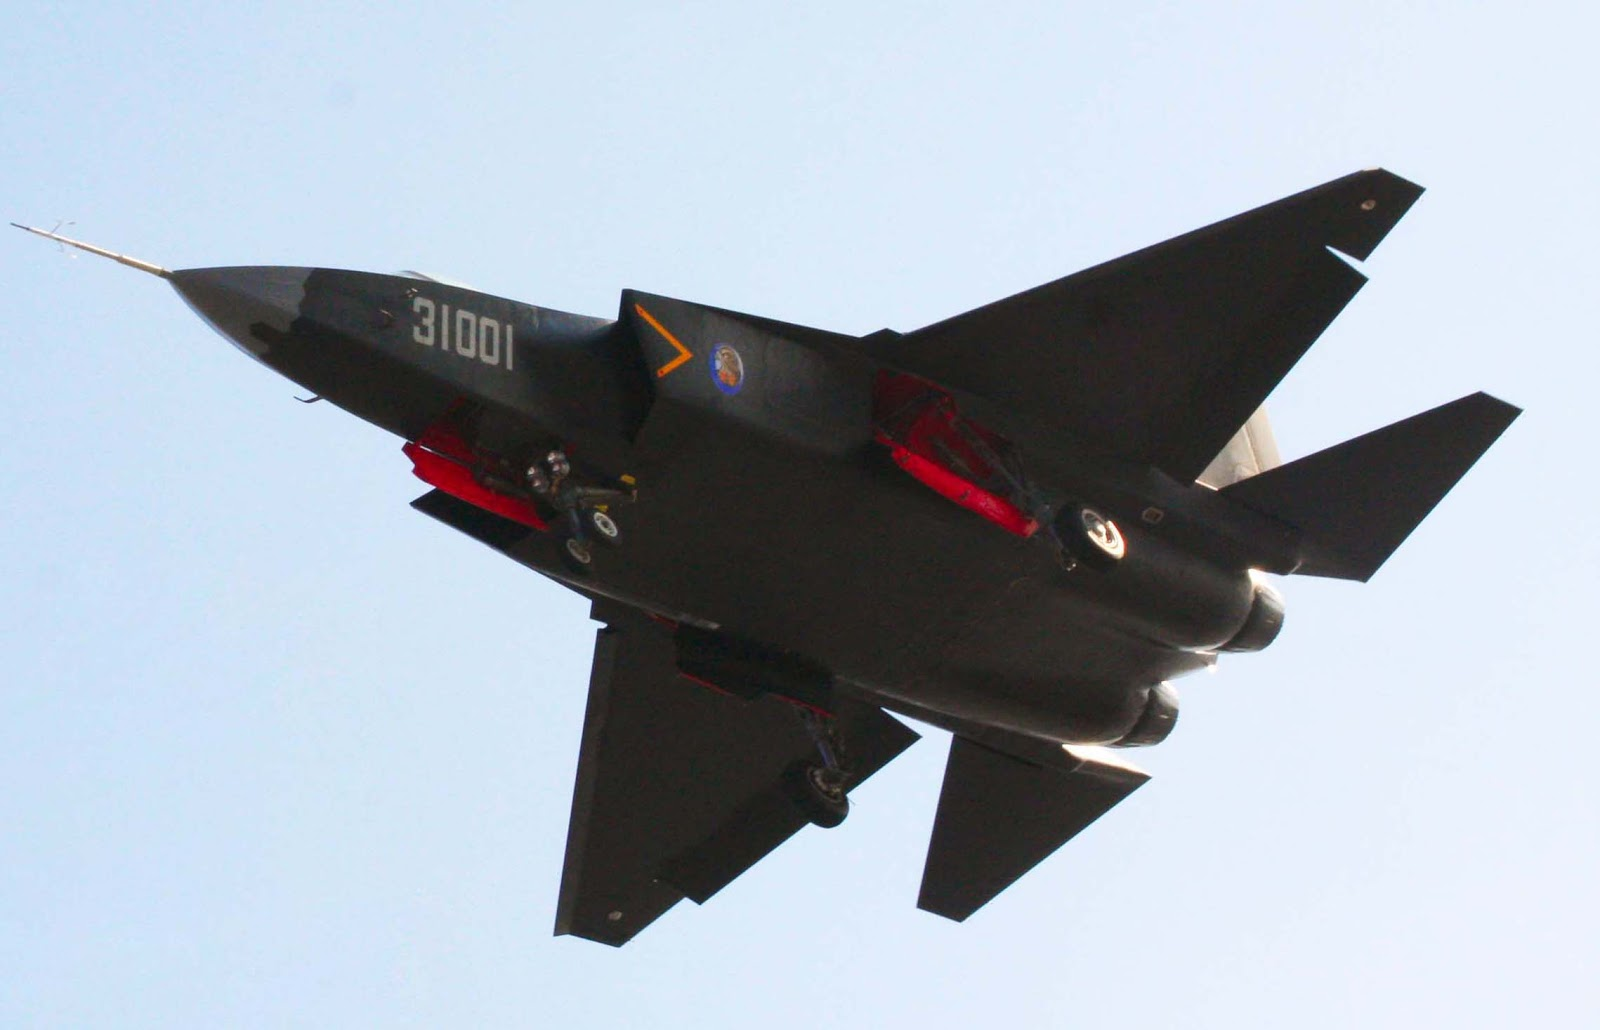 china+J-31+fifth+generation+stealth,+naval+carrier+aircraft+prototype+People's+Liberation+Army+Air+Force++OPERATIONAL+weapons+aam+bvr+missile+ls+pgm+gps+plaaf+test+flightf-22+1+pl-12+10+21+(5).jpg